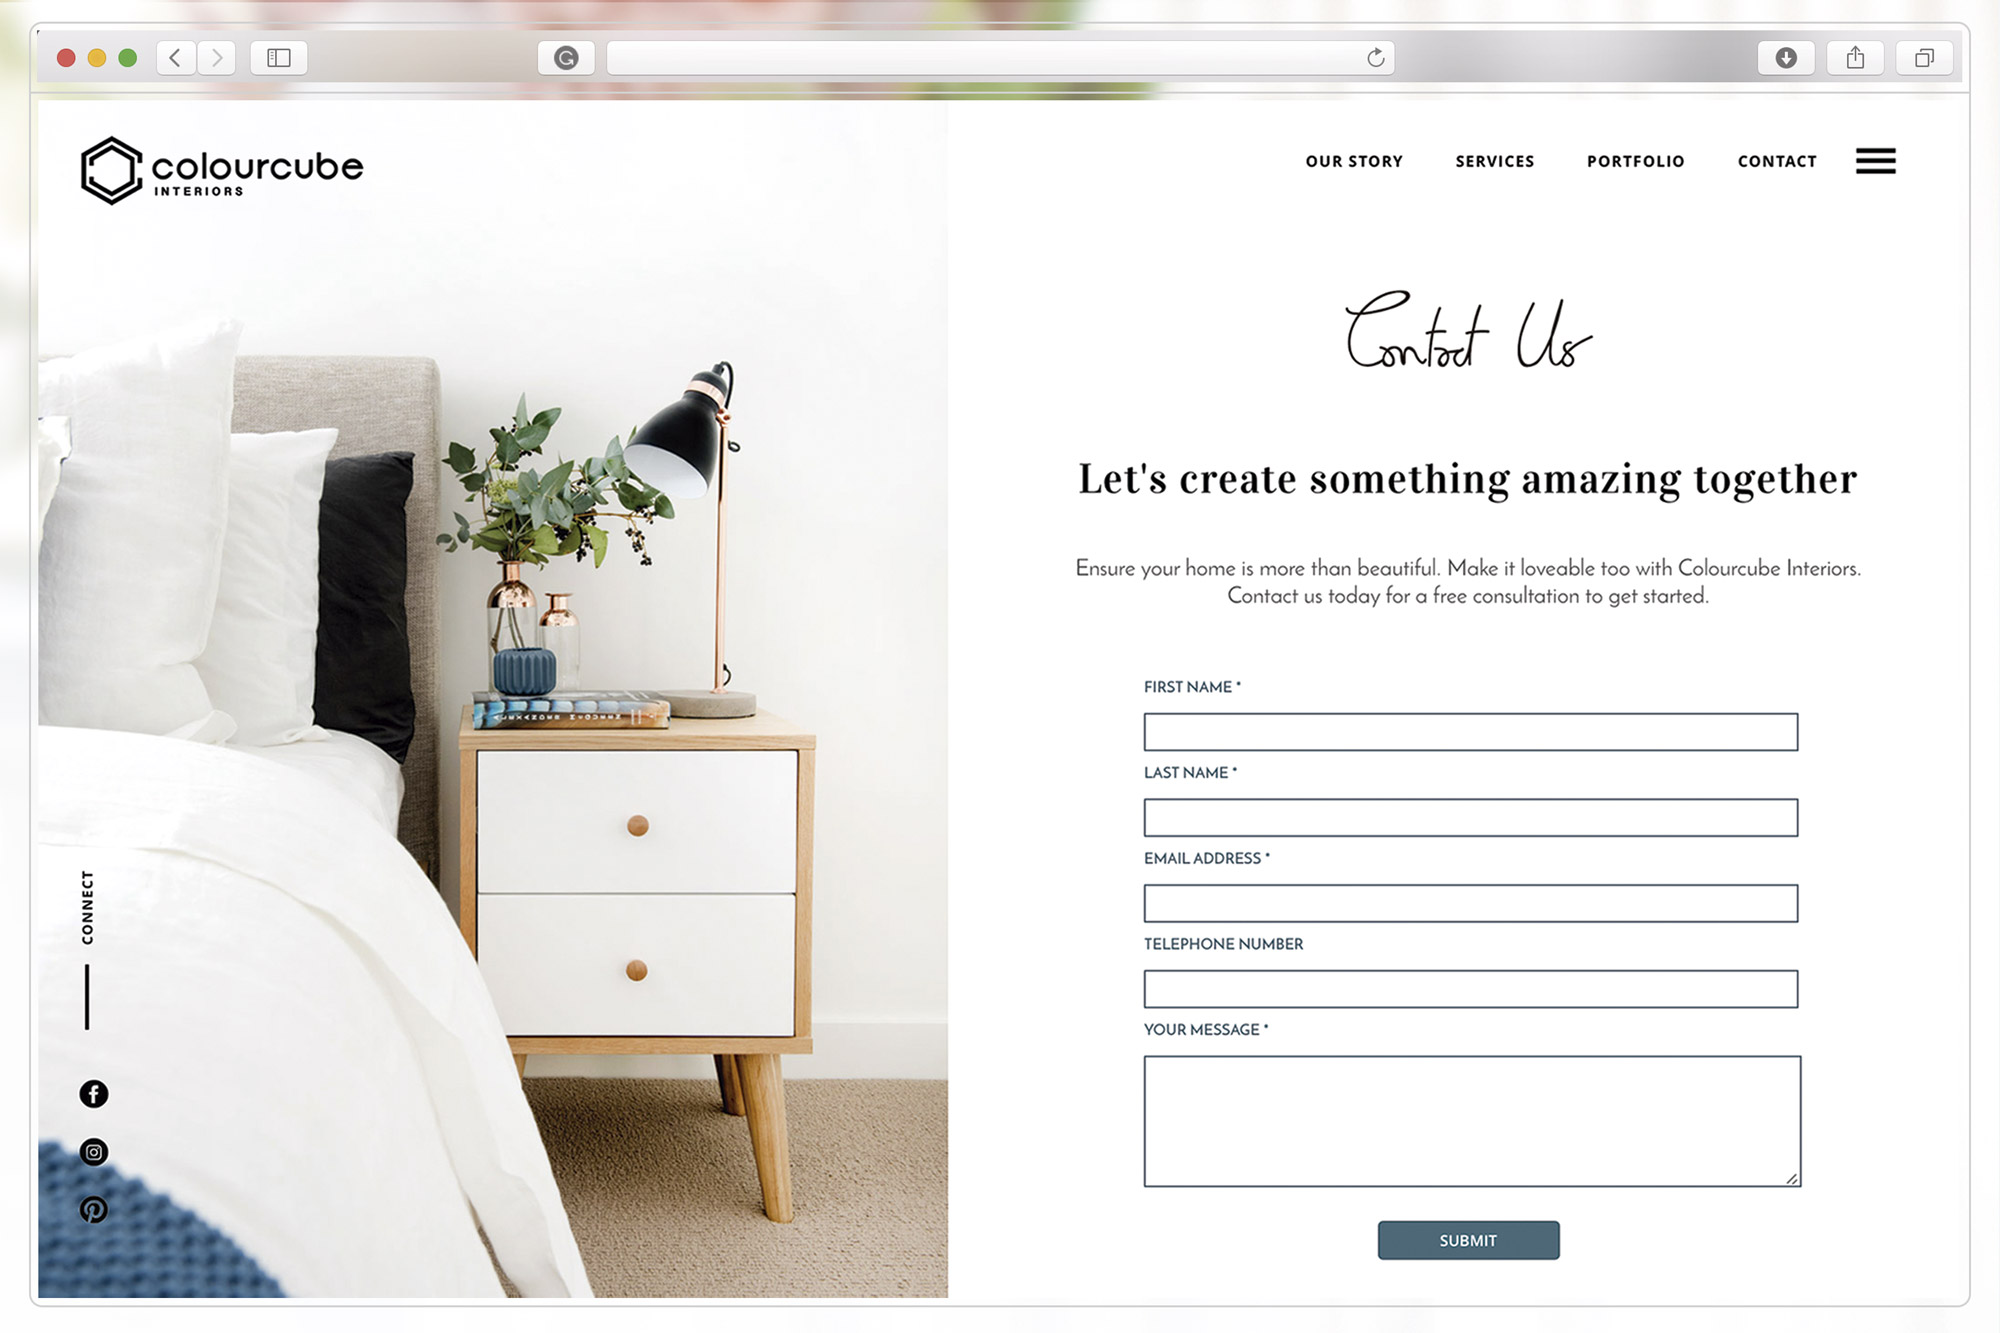 Contact page of ColourCube Interiors website